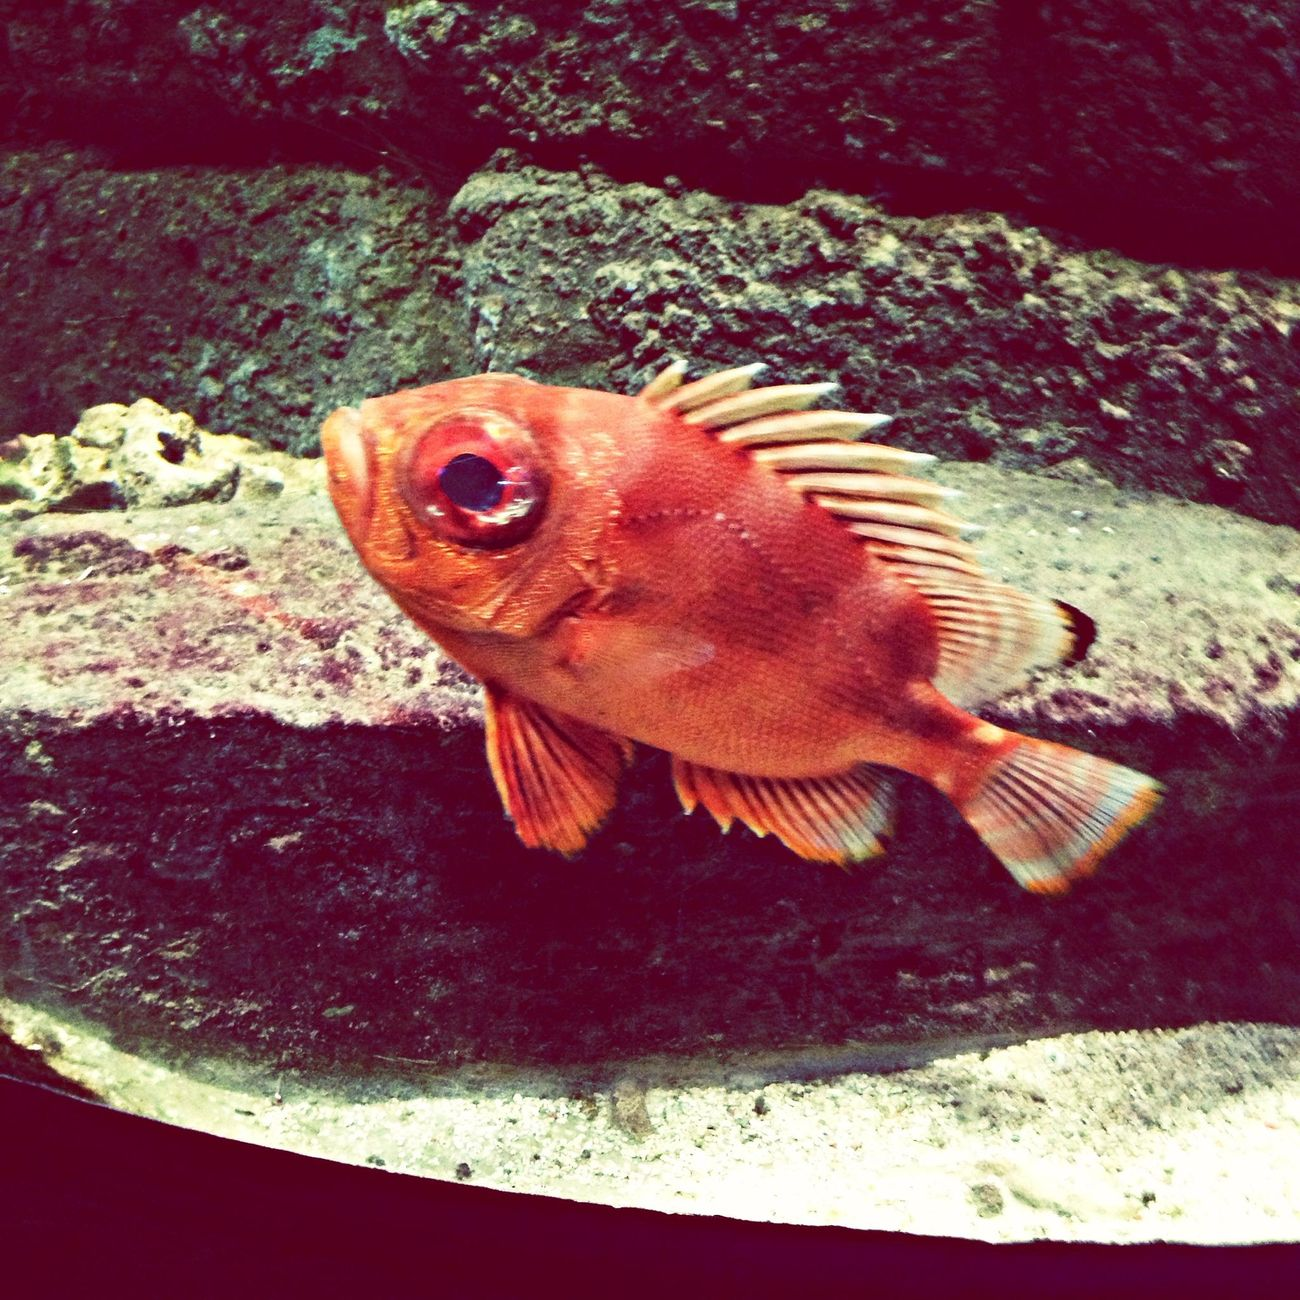 I took such a good photo of this fish, im so pleased :) its a awsome fishy